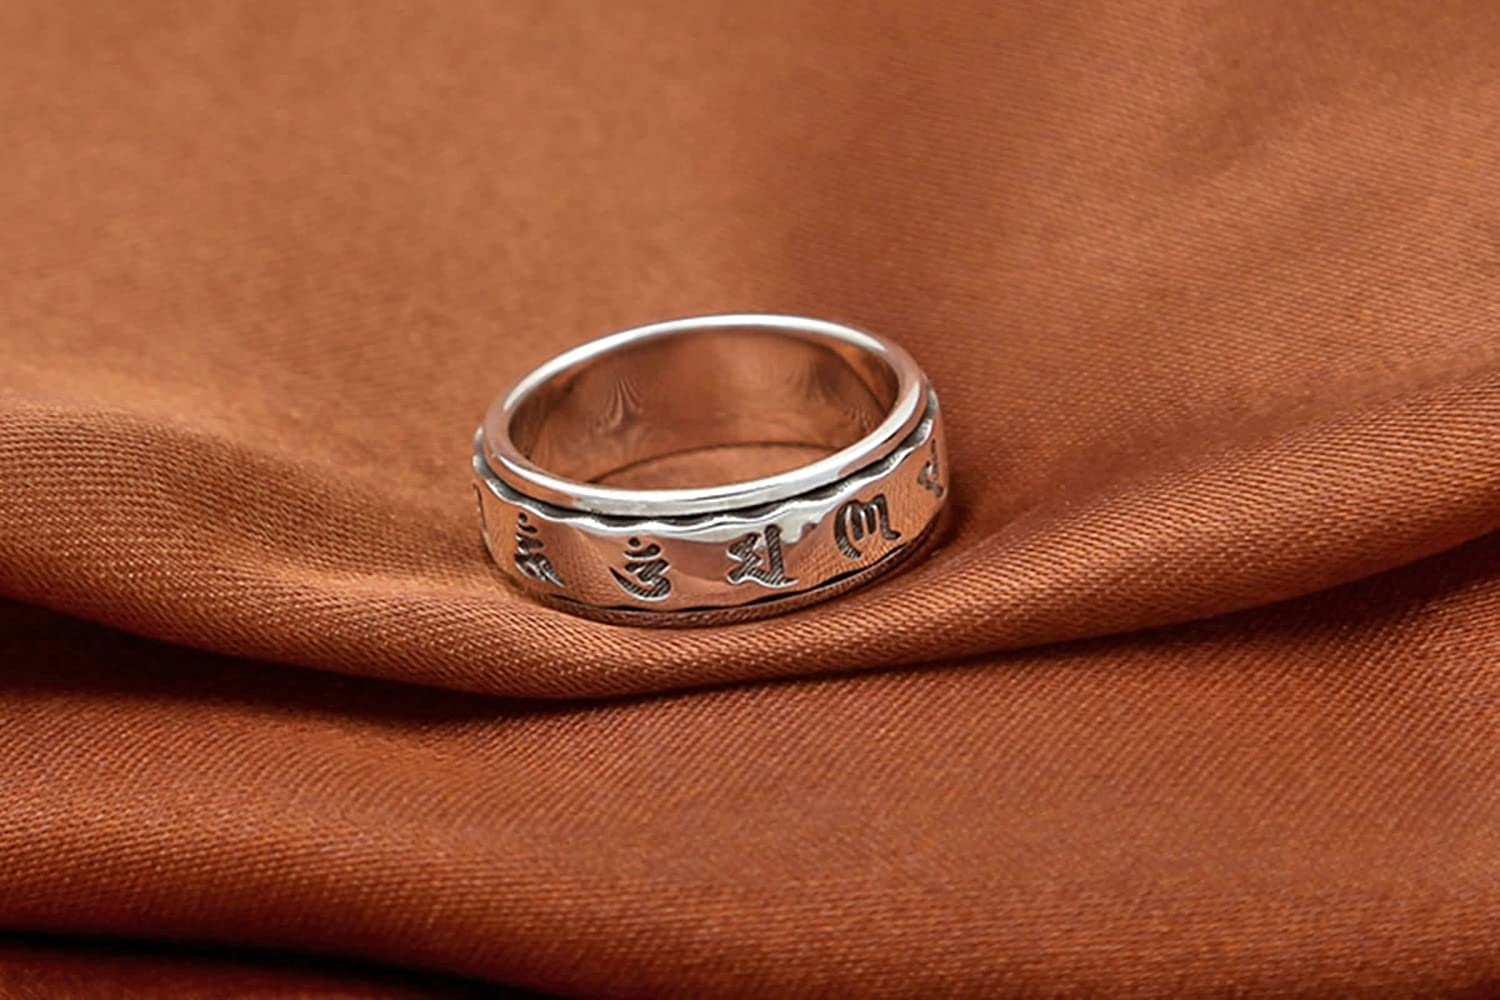 Aooaz Silver Material Ring Six-Word Mantra Memoirs Wave Ring Ring for Men